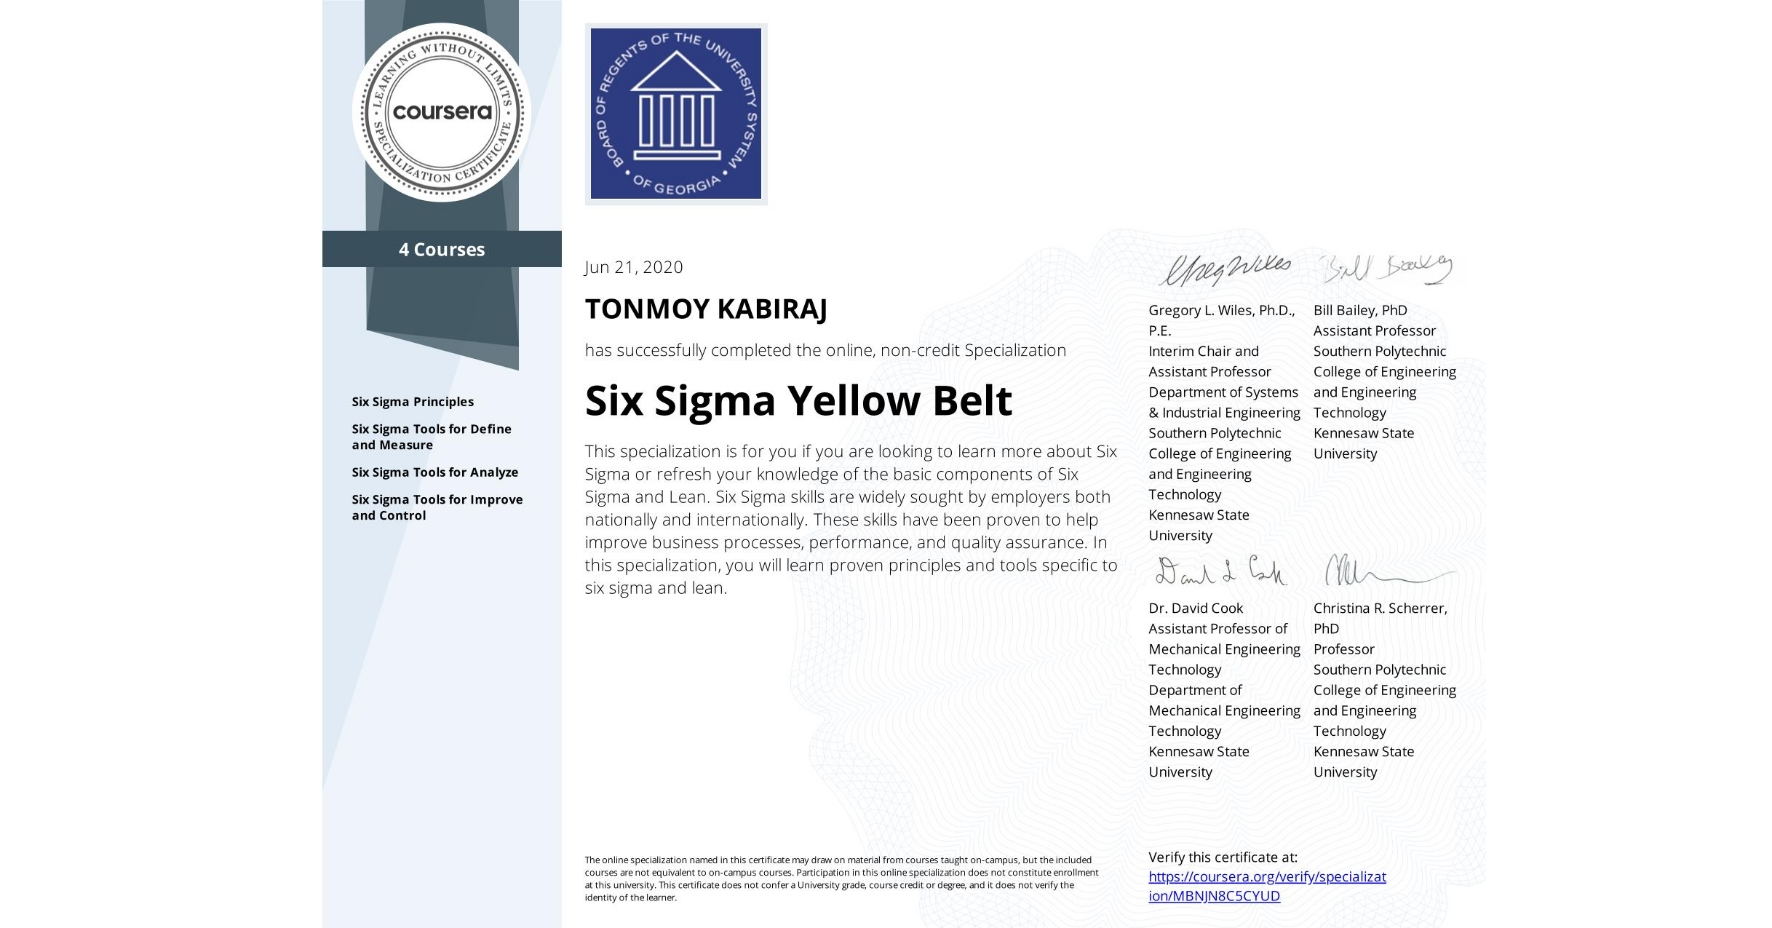 View certificate for TONMOY KABIRAJ, Six Sigma Yellow Belt, offered through Coursera. This specialization is for you if you are looking to learn more about Six Sigma or refresh your knowledge of the basic components of Six Sigma and Lean. Six Sigma skills are widely sought by employers both nationally and internationally. These skills have been proven to help improve business processes, performance, and quality assurance.  In this specialization, you will learn proven principles and tools specific to six sigma and lean.